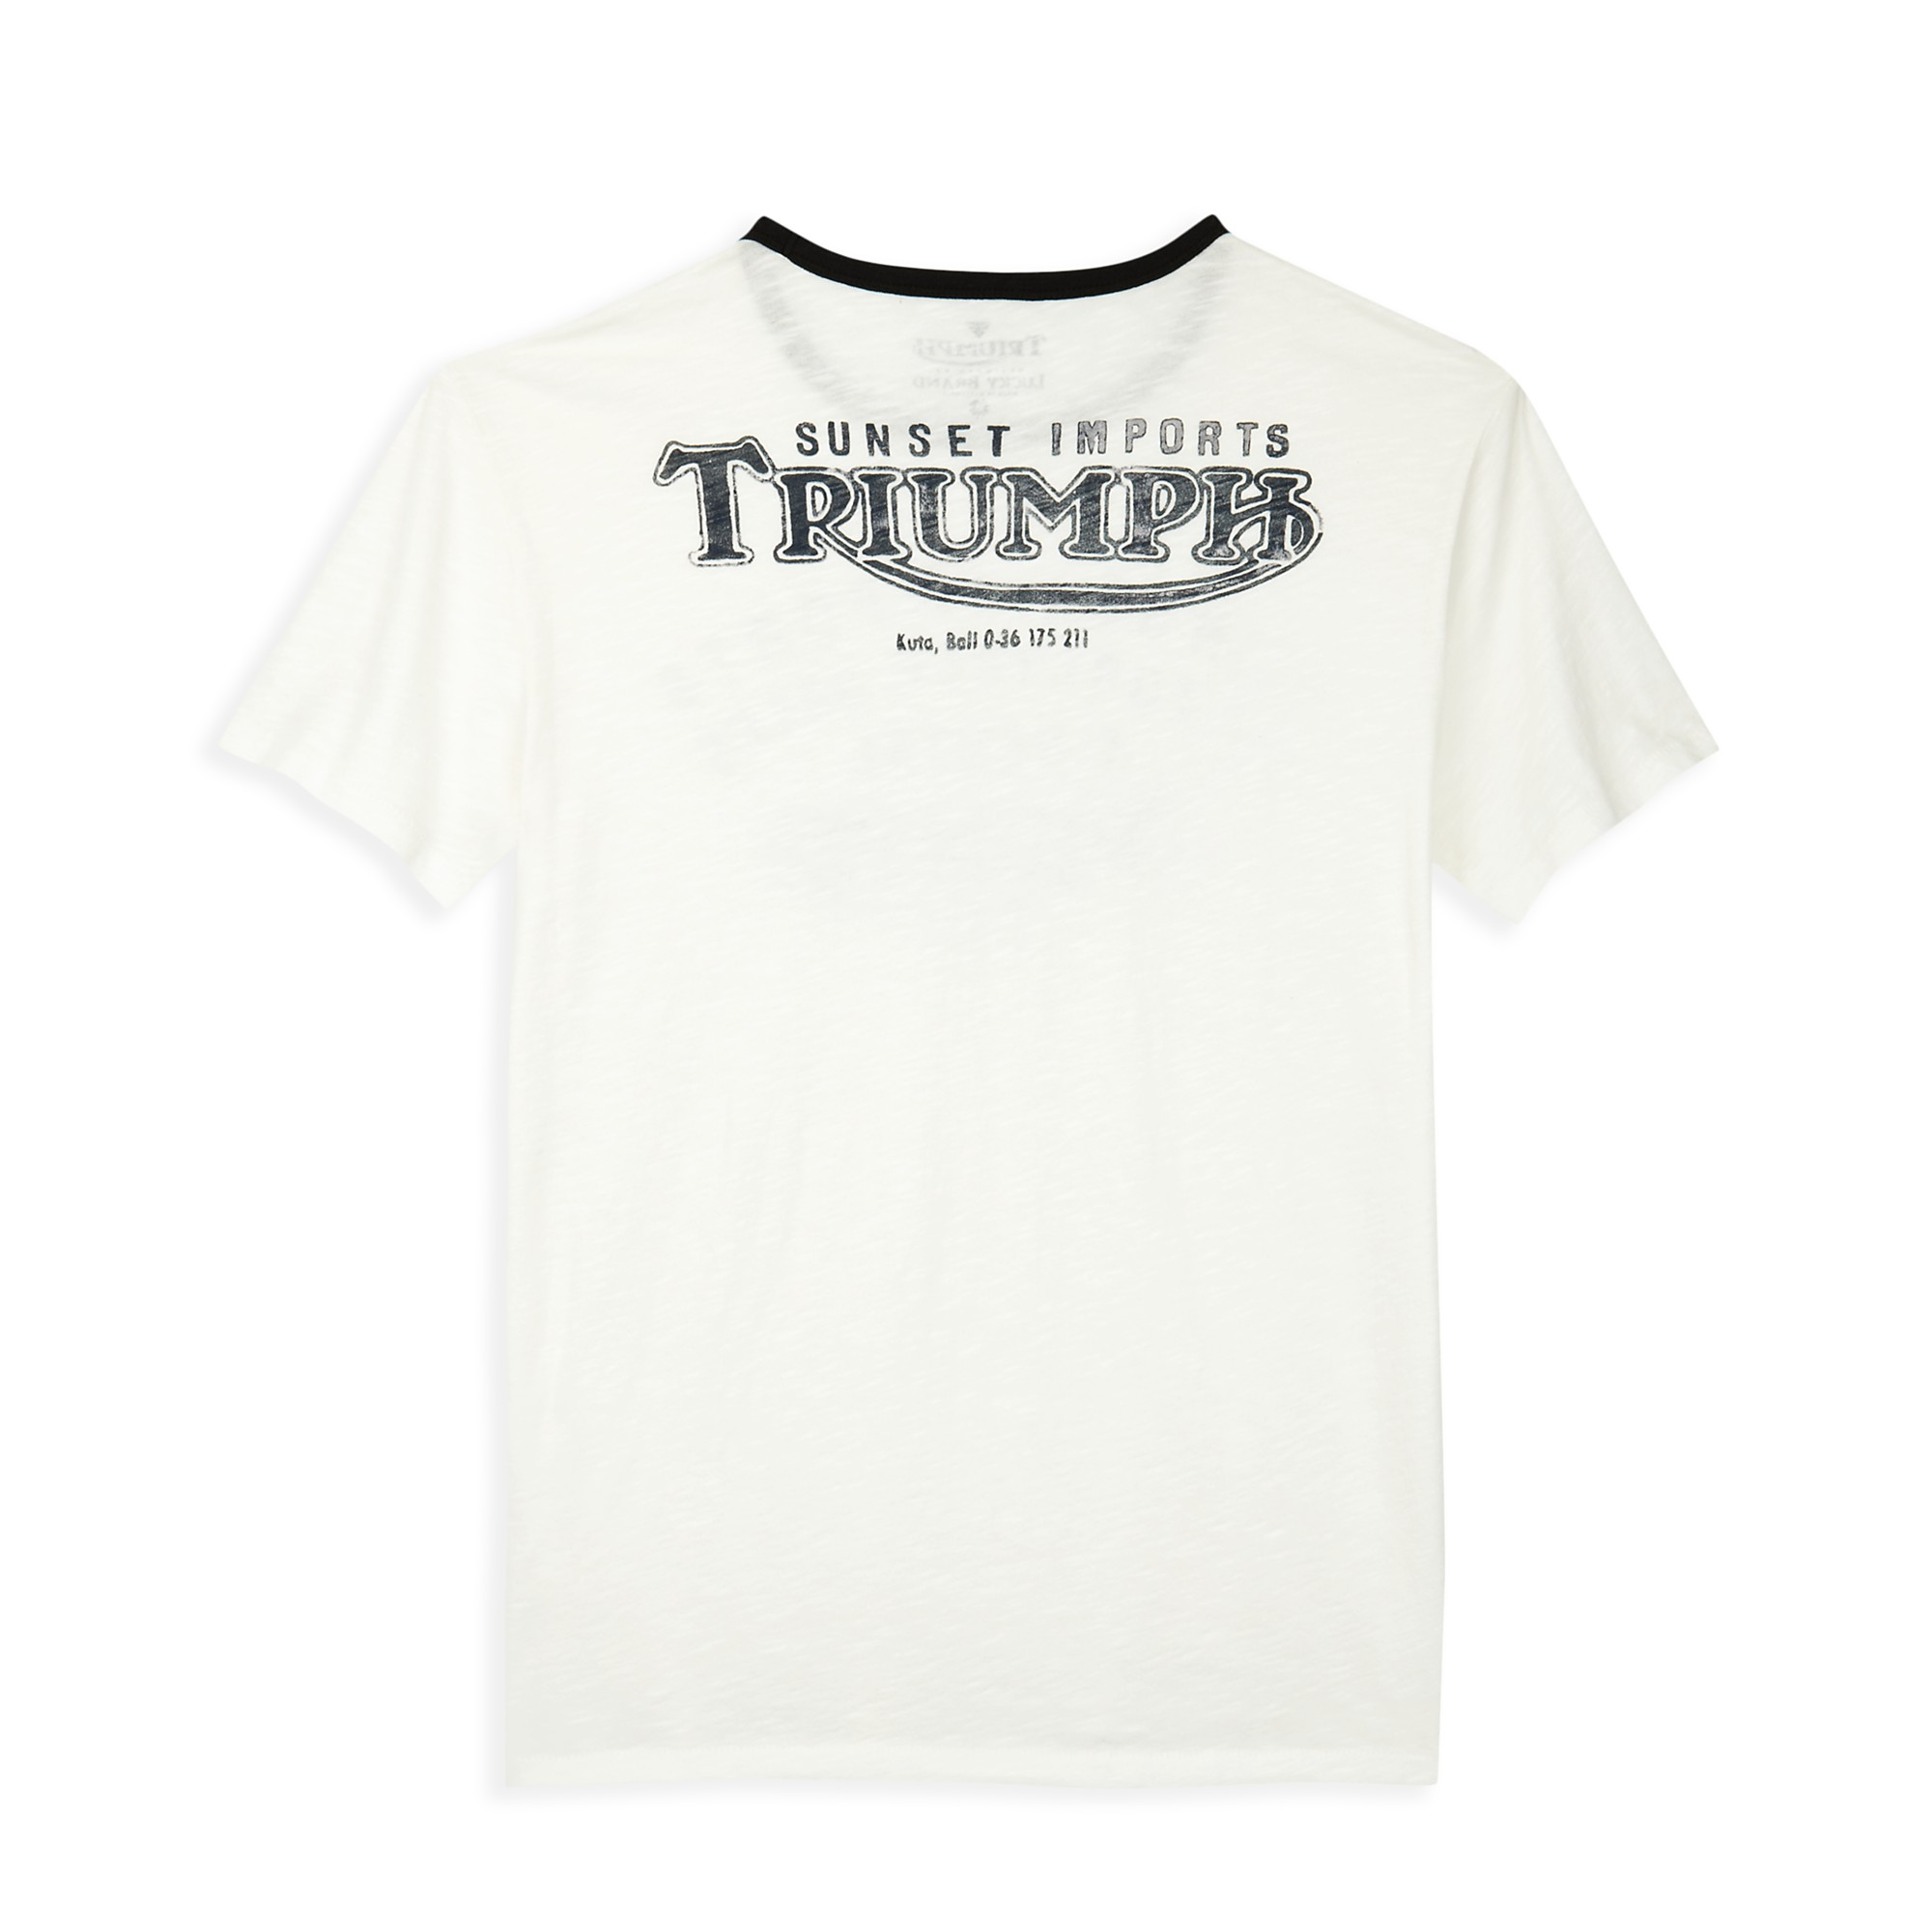 Lucky Brand Triumph Sunset Imports Tshirt In White For Men